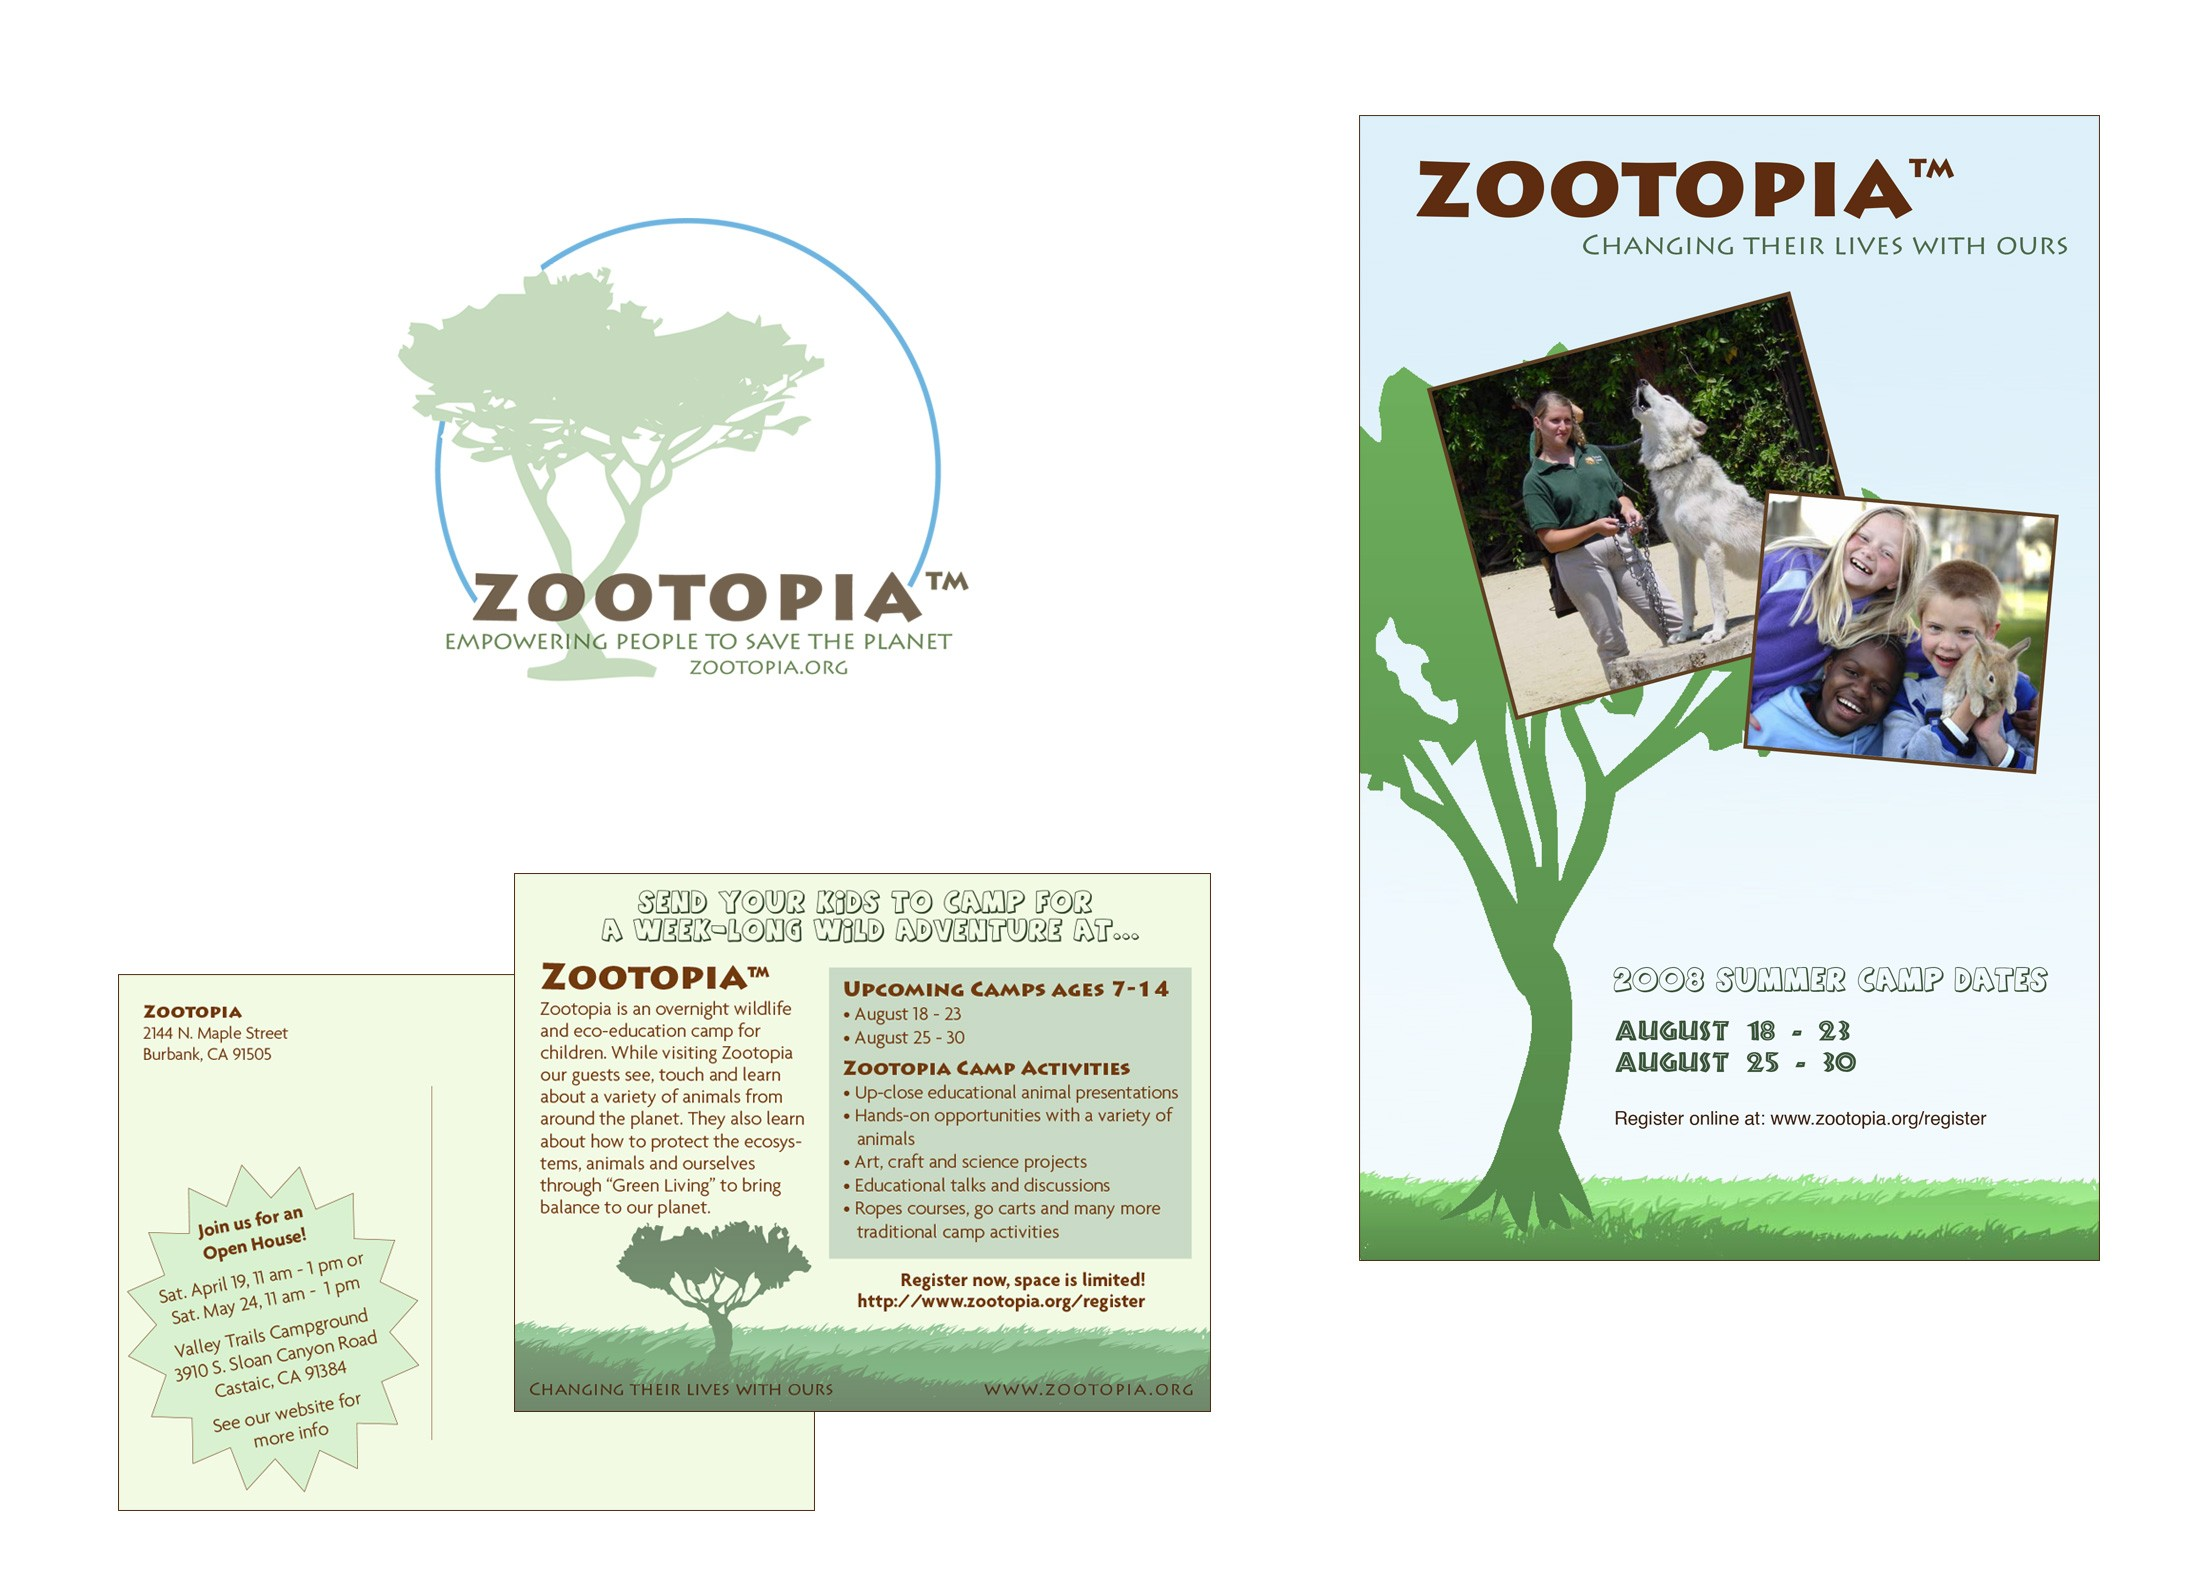 Logo and collateral pieces were designed to match the look and feel of the website.